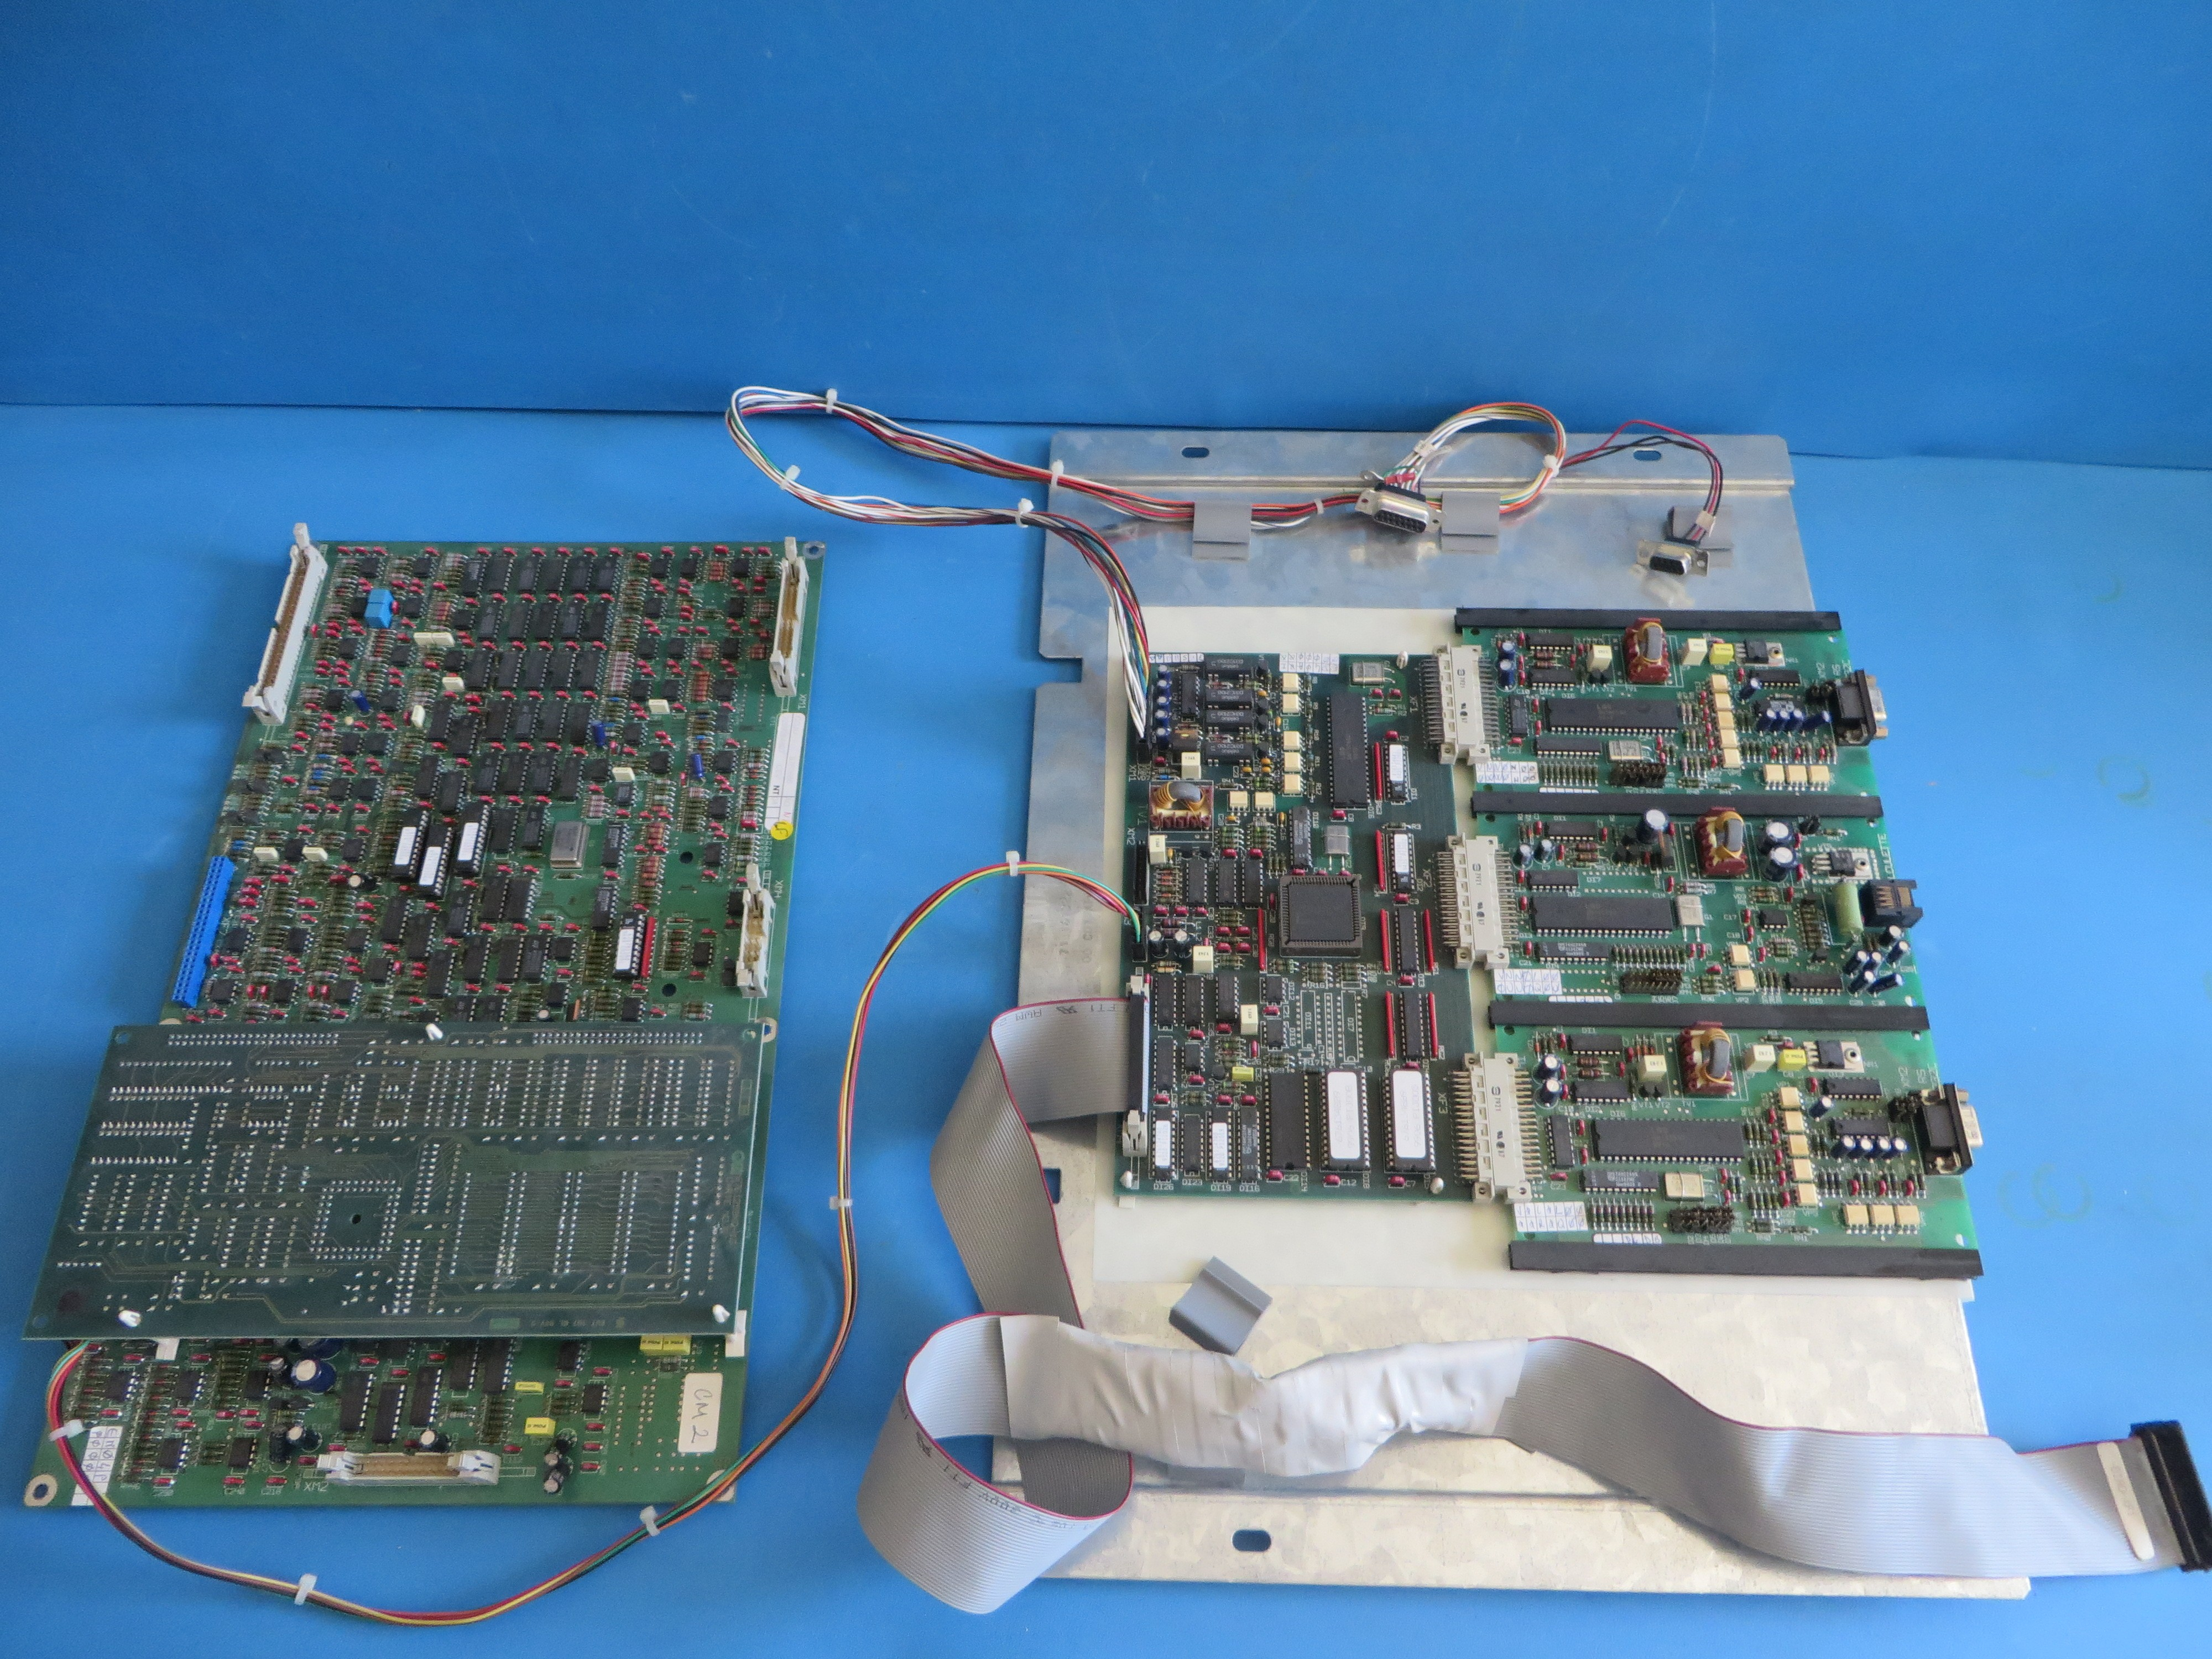 Merlin Gerin Mge Ups System Circuit Boards Coju Cm2 Calculette And Silicon Board Rs232